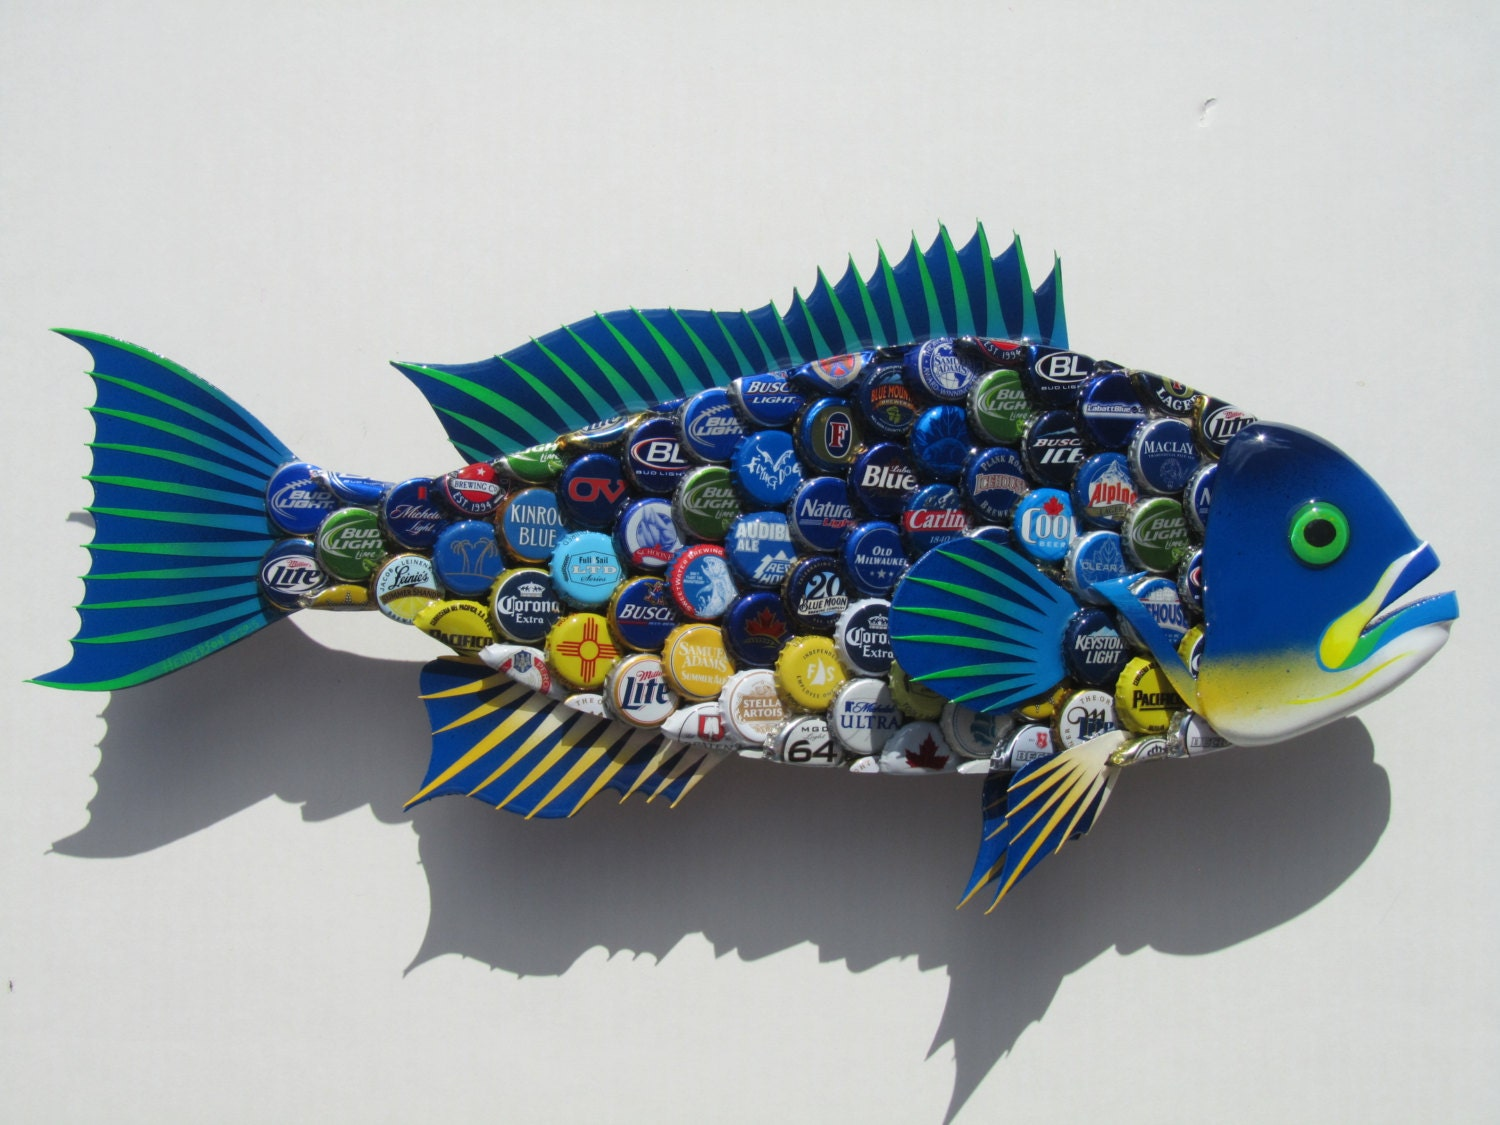 17 Best images about Upcycled Art on Pinterest | Bottle ...  |Upcycled Art